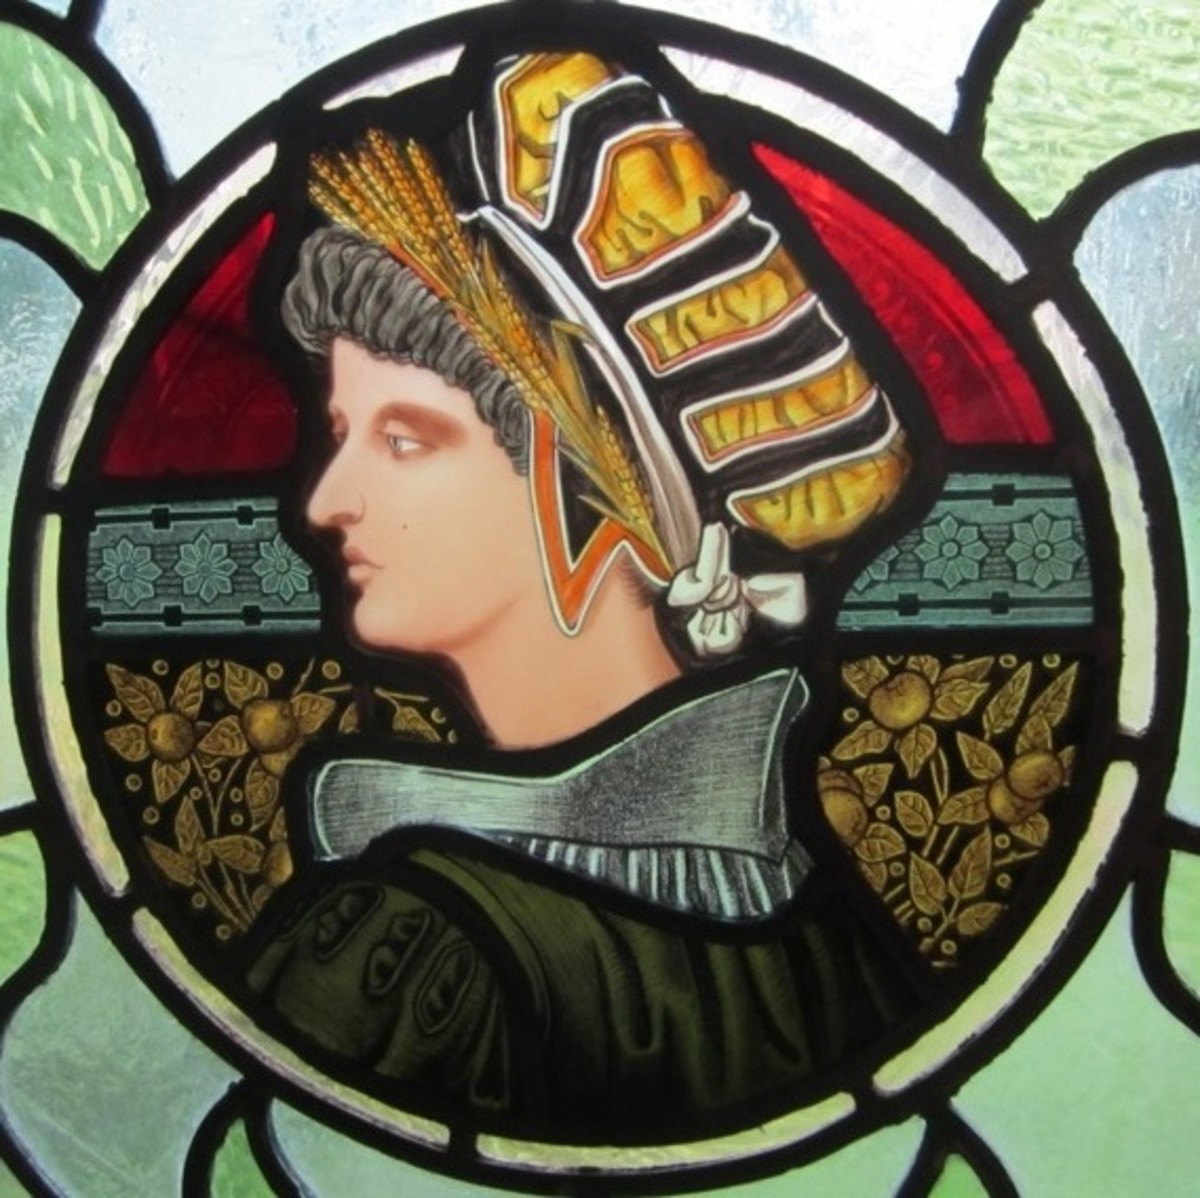 Detail from a stained and leaded glass window used in a Gothic library designed by Restoration Decor and Consulting.